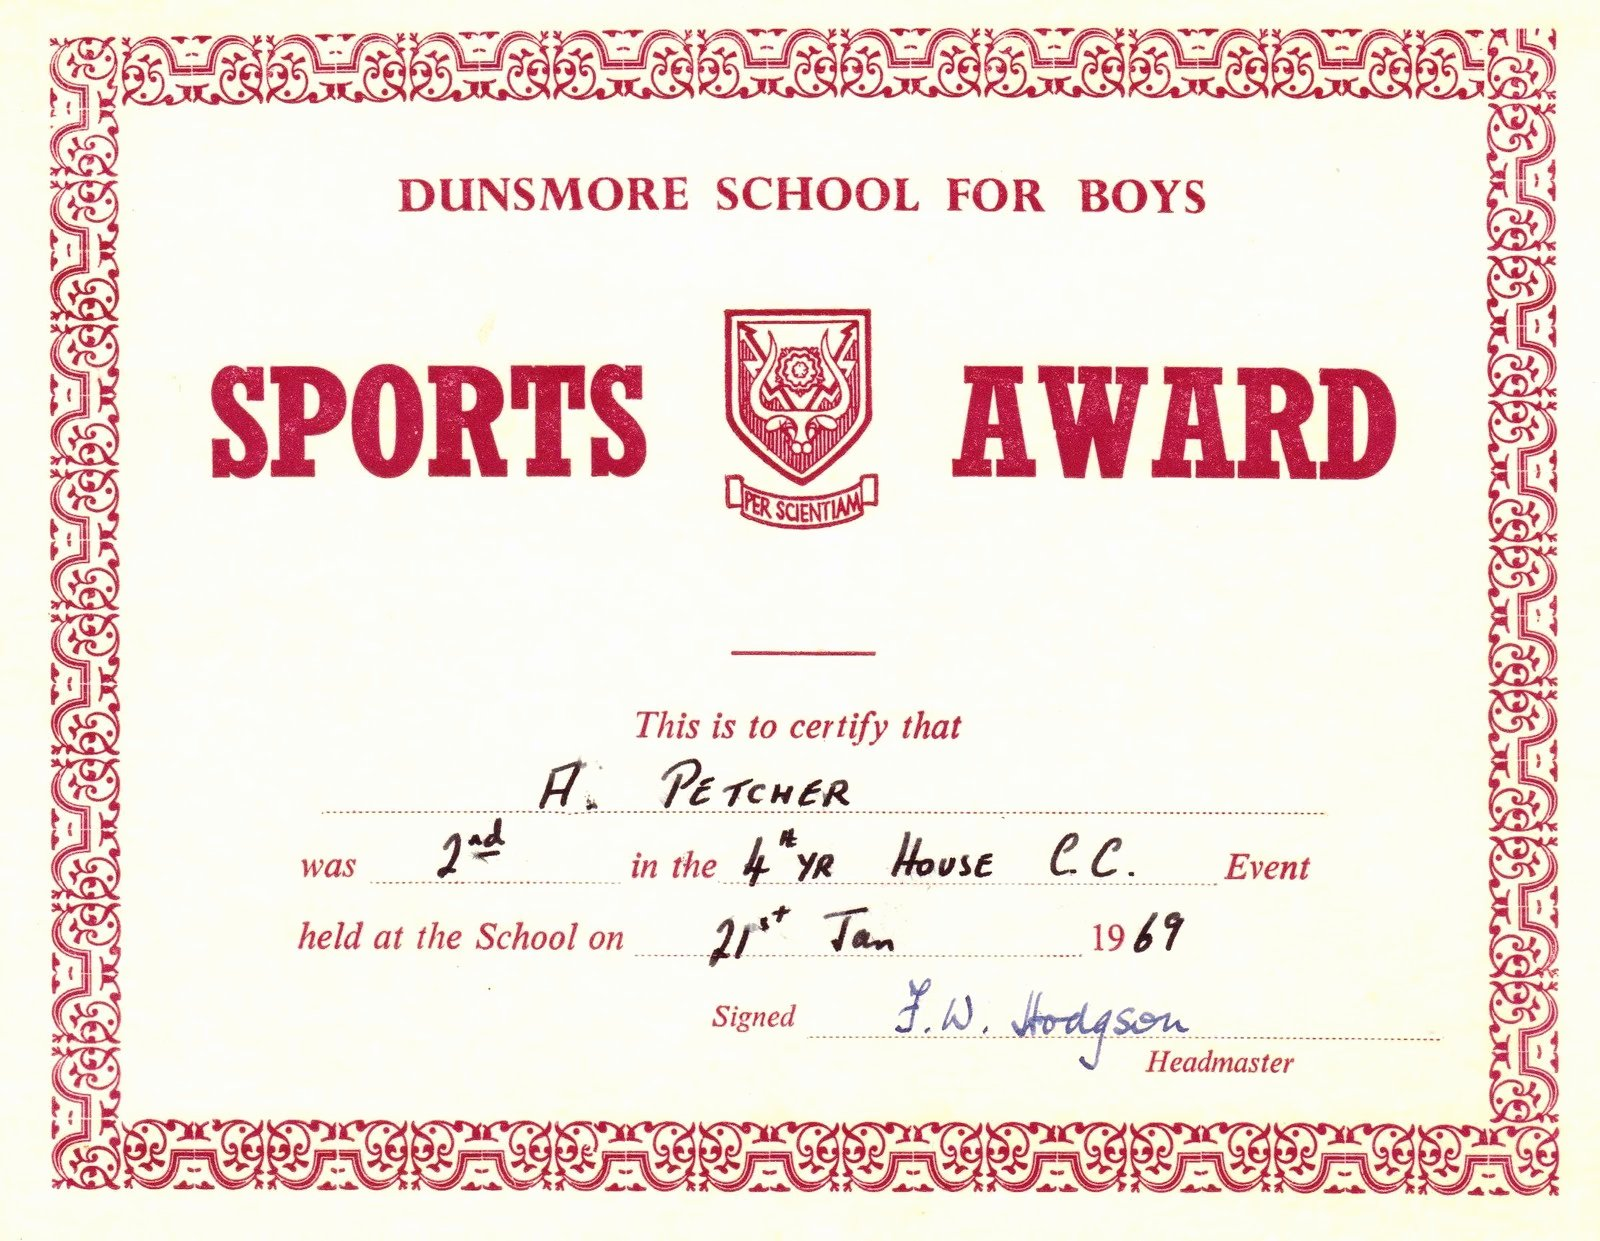 Sports Certificate format In Word Awesome Red Award Sports Certificates Word Pdf